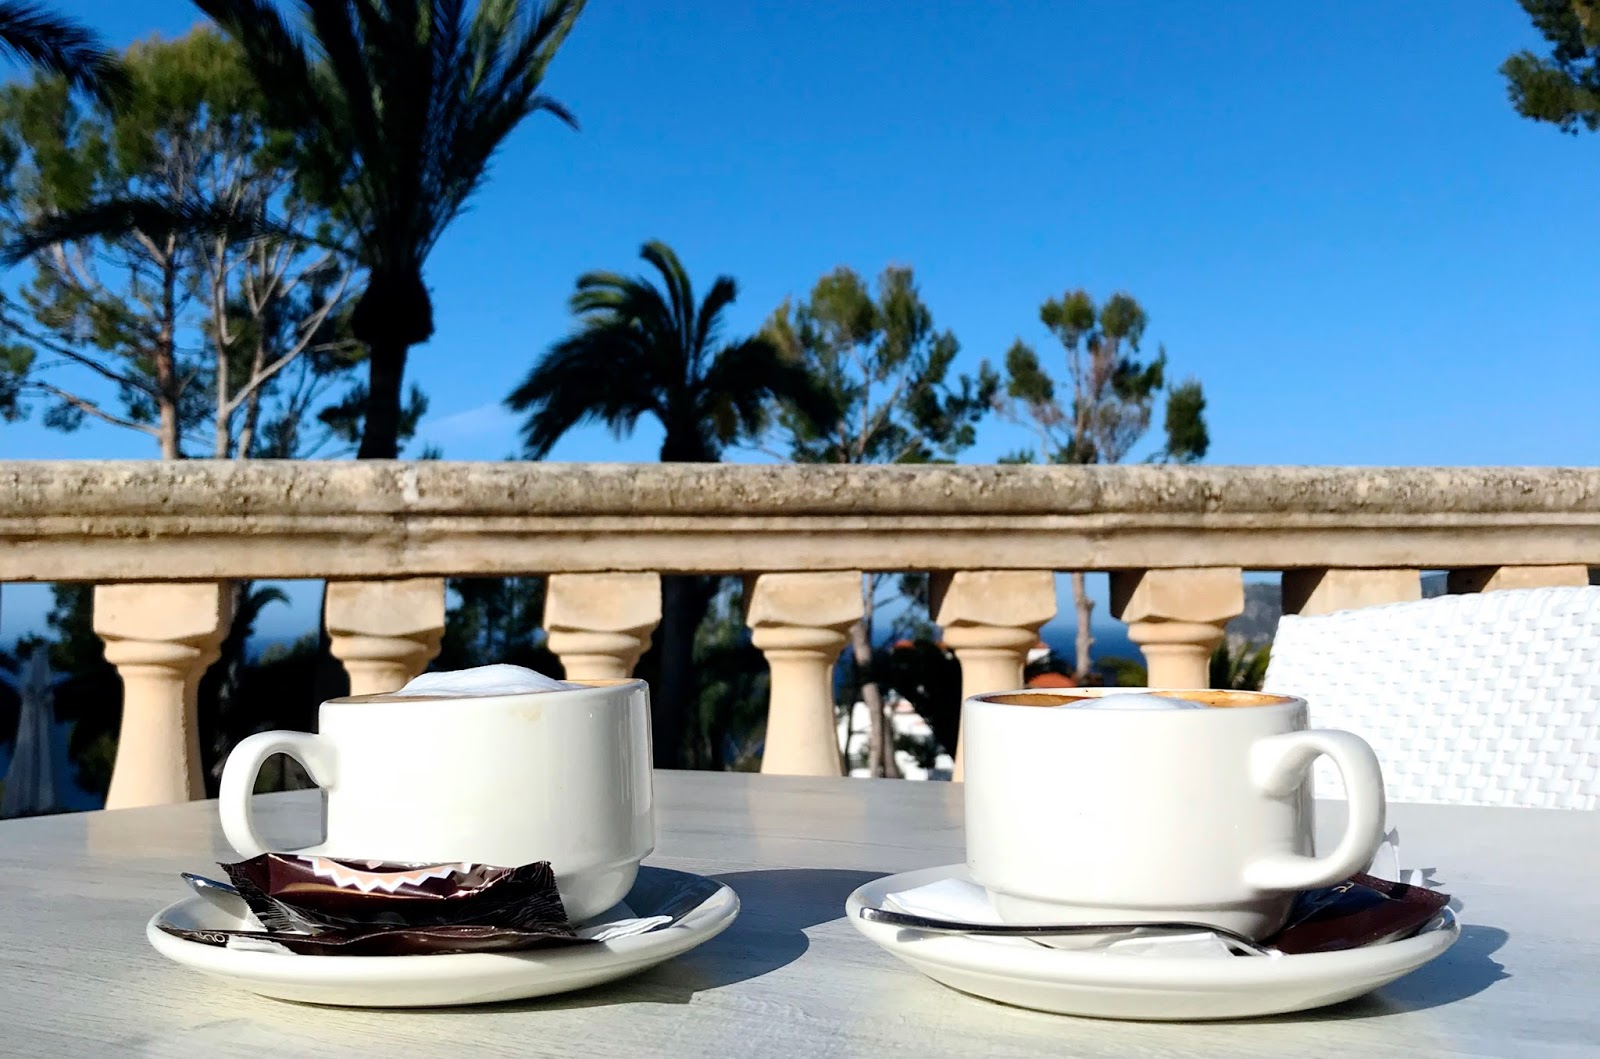 two cups of coffee on a terrace with palm trees